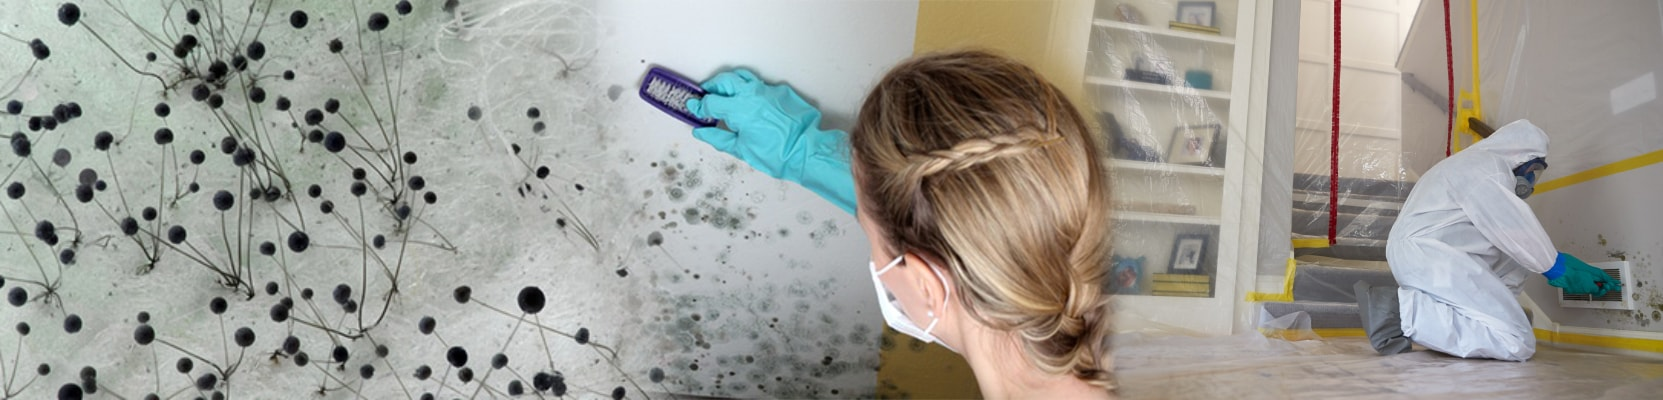 mold-remediation-in-staten-island-and-brooklyn-ny-servicemaster-restoration-by-complete